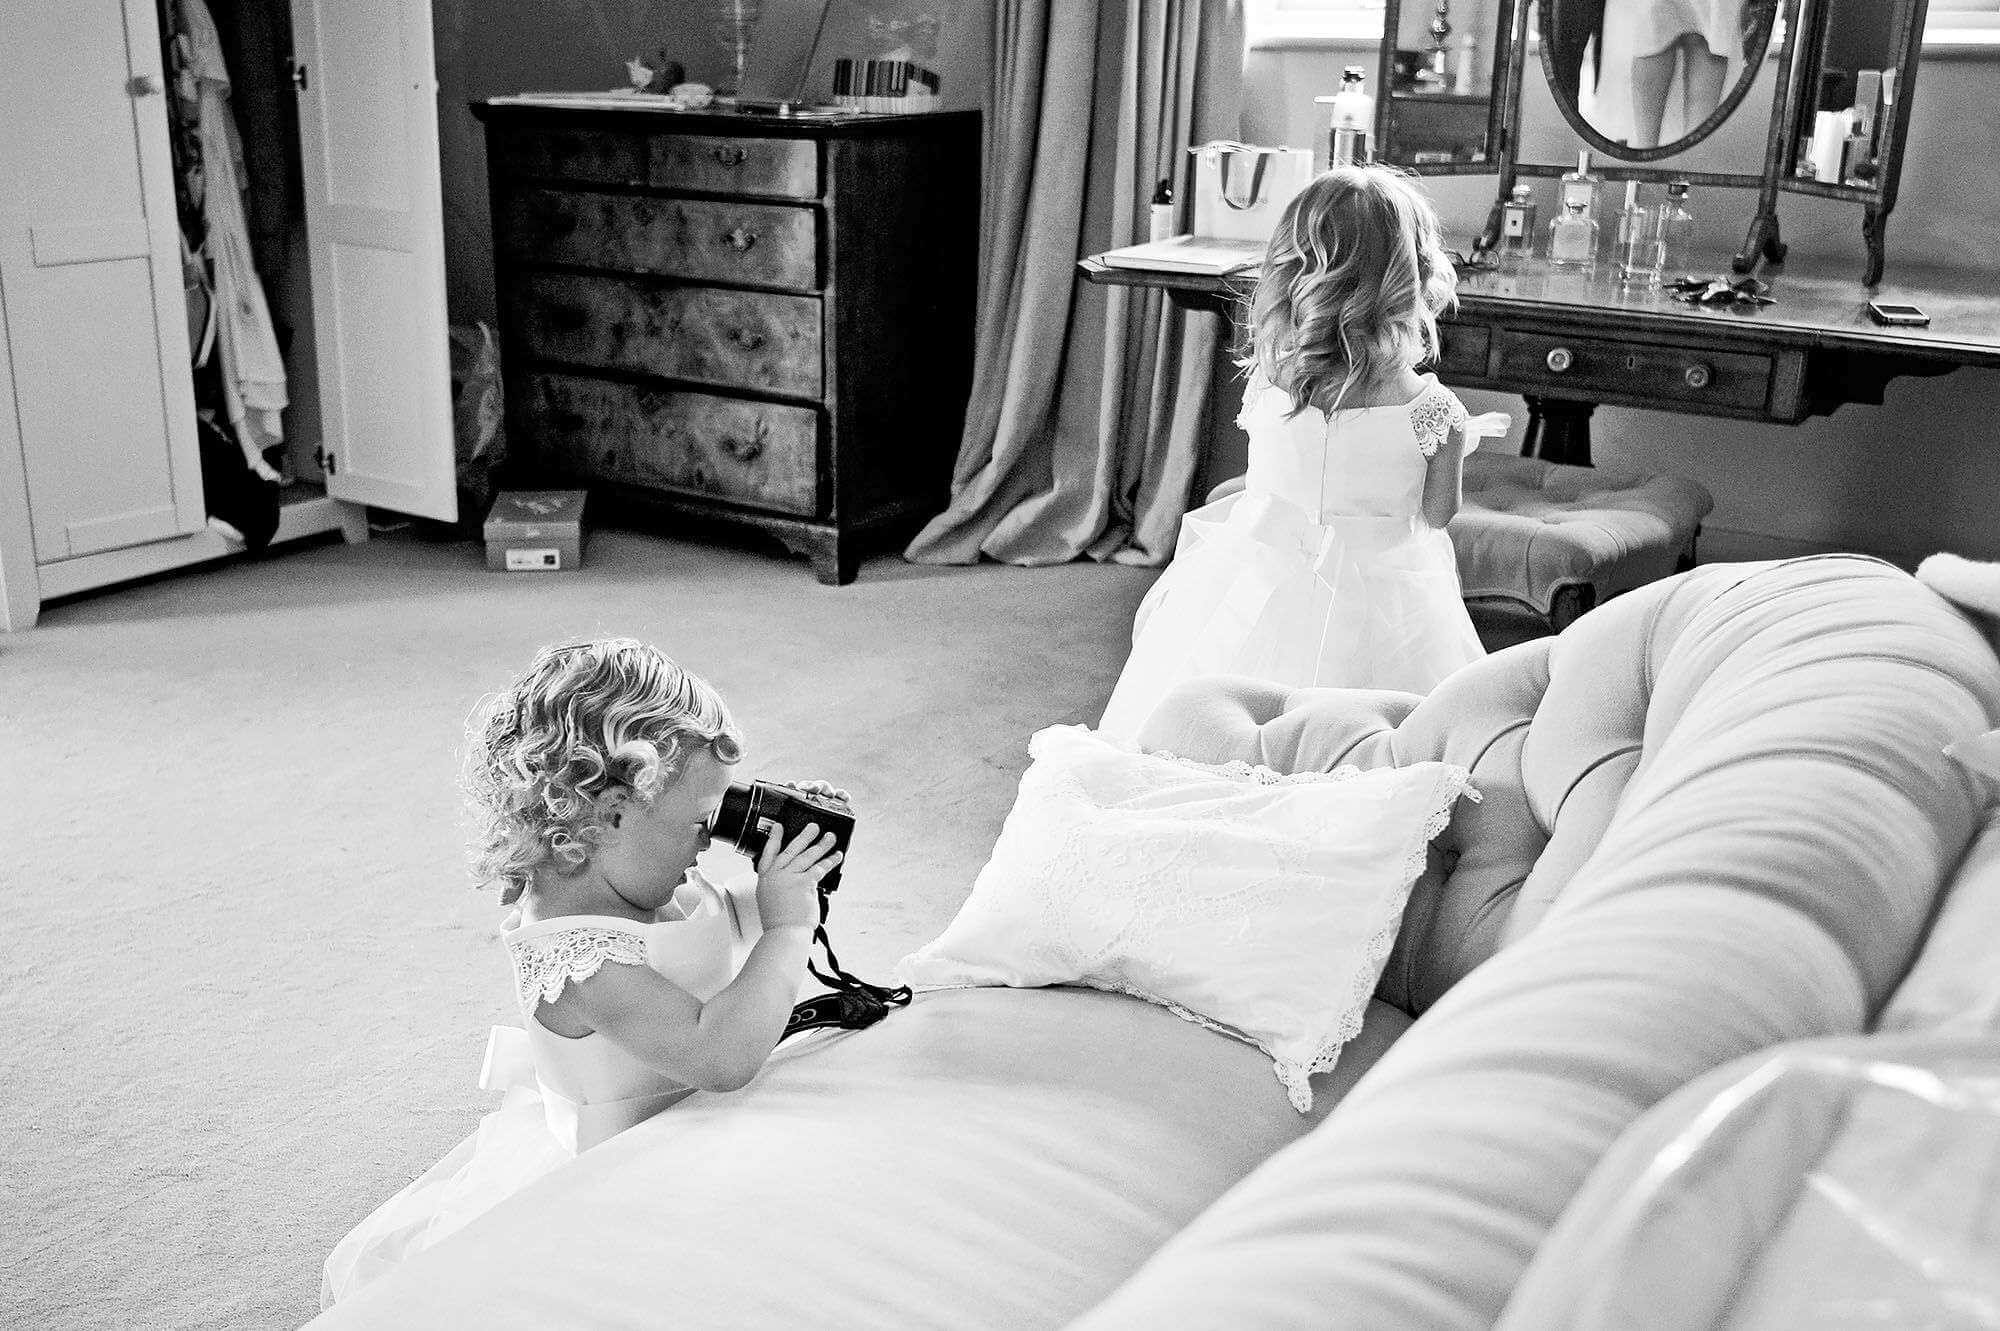 Flowergirl playing with a camera